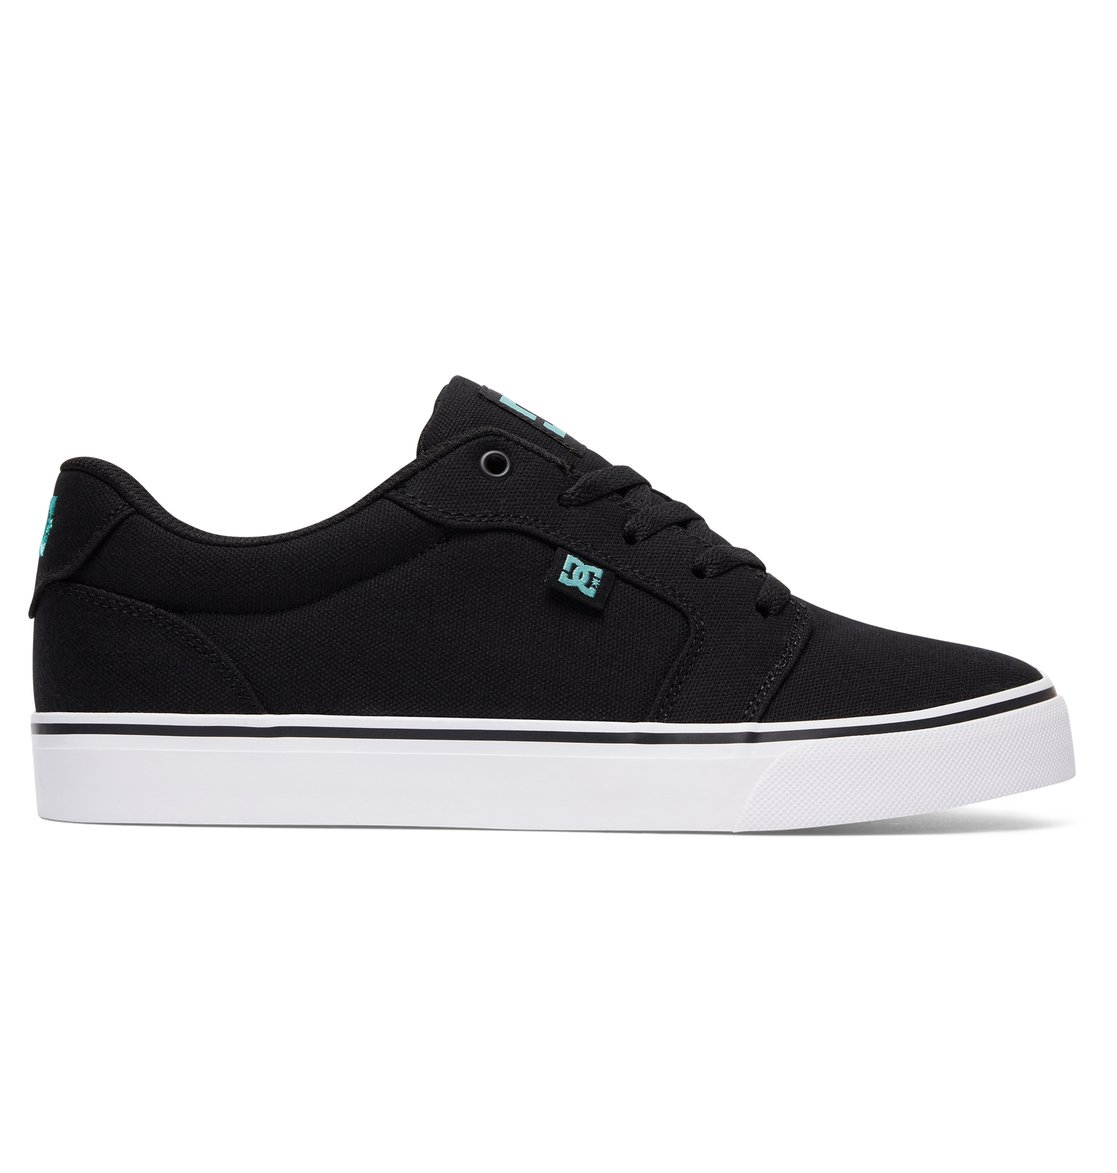 2015 cheap online Men's DC Anvil TX SE Skate Shoes pay with paypal online cheap sale 100% authentic low shipping OG5CDWGz